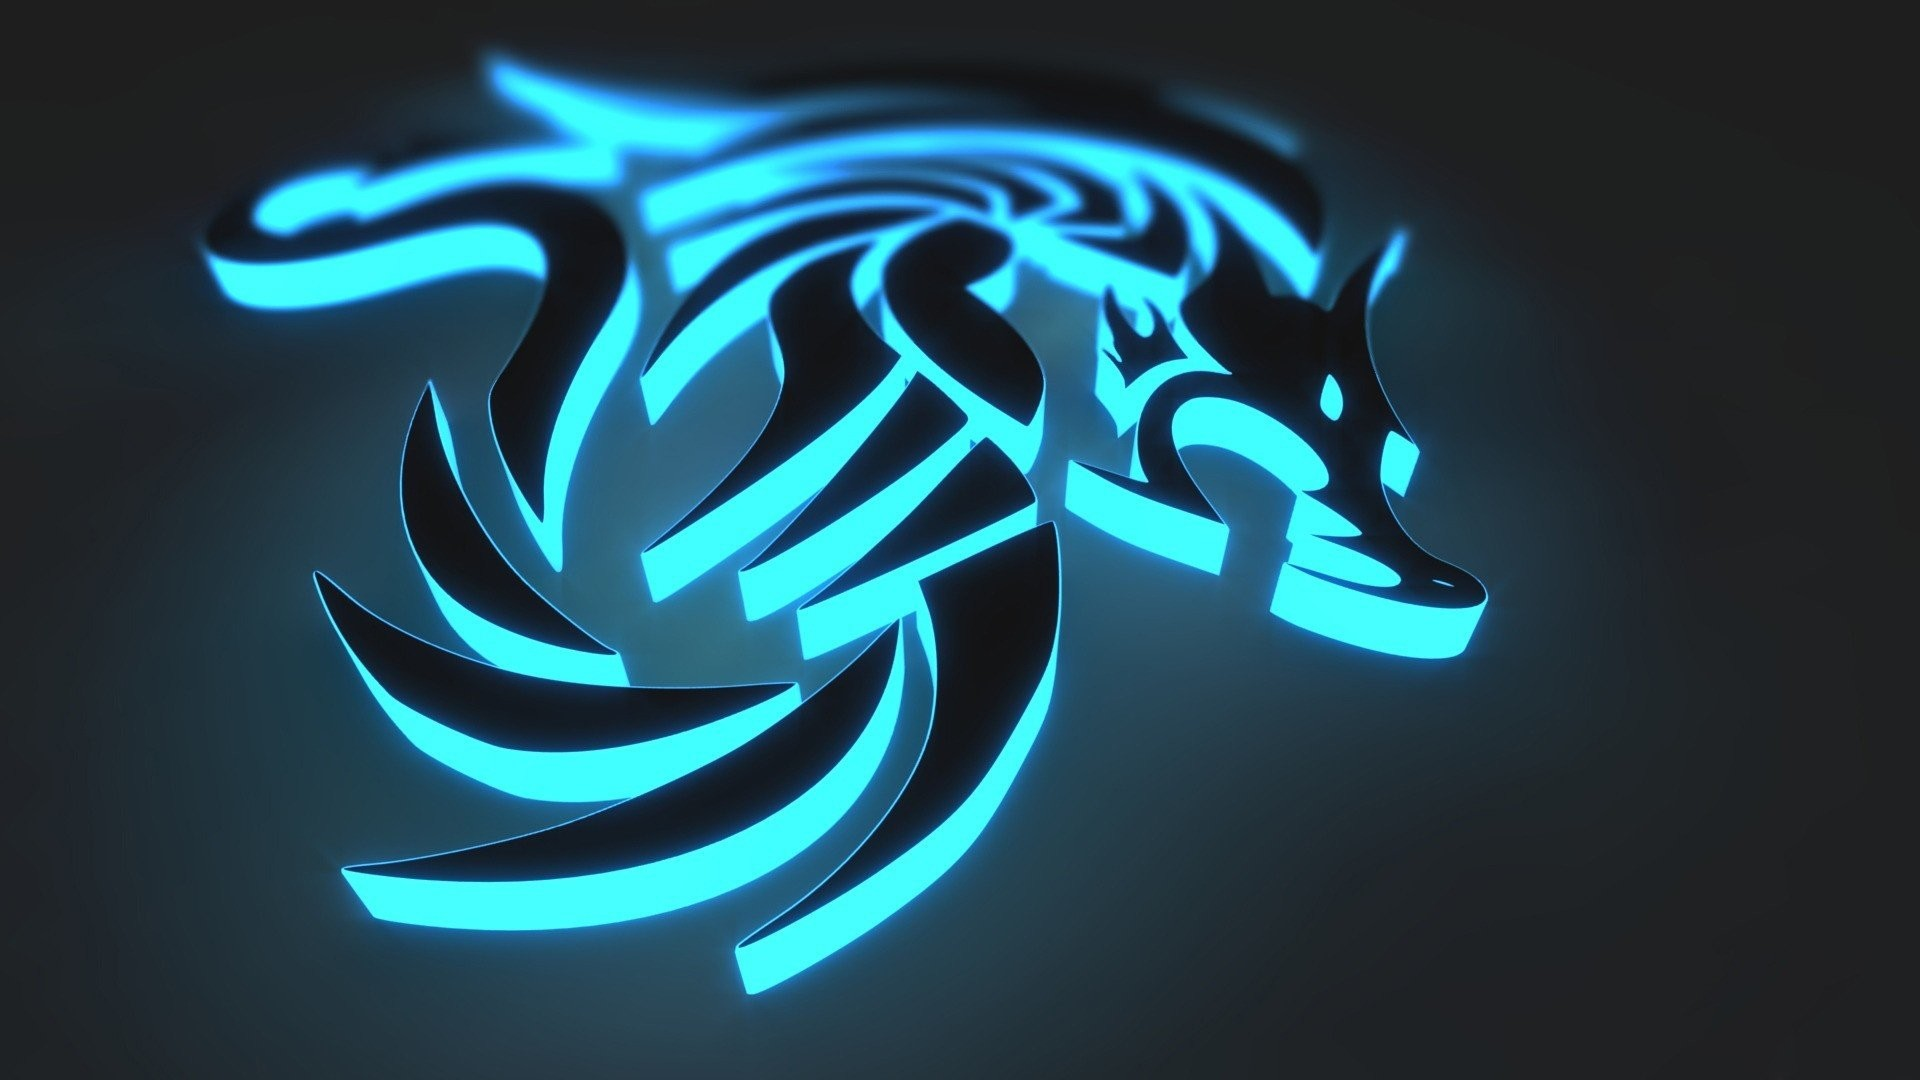 Res: 1920x1080, cool dragon logos